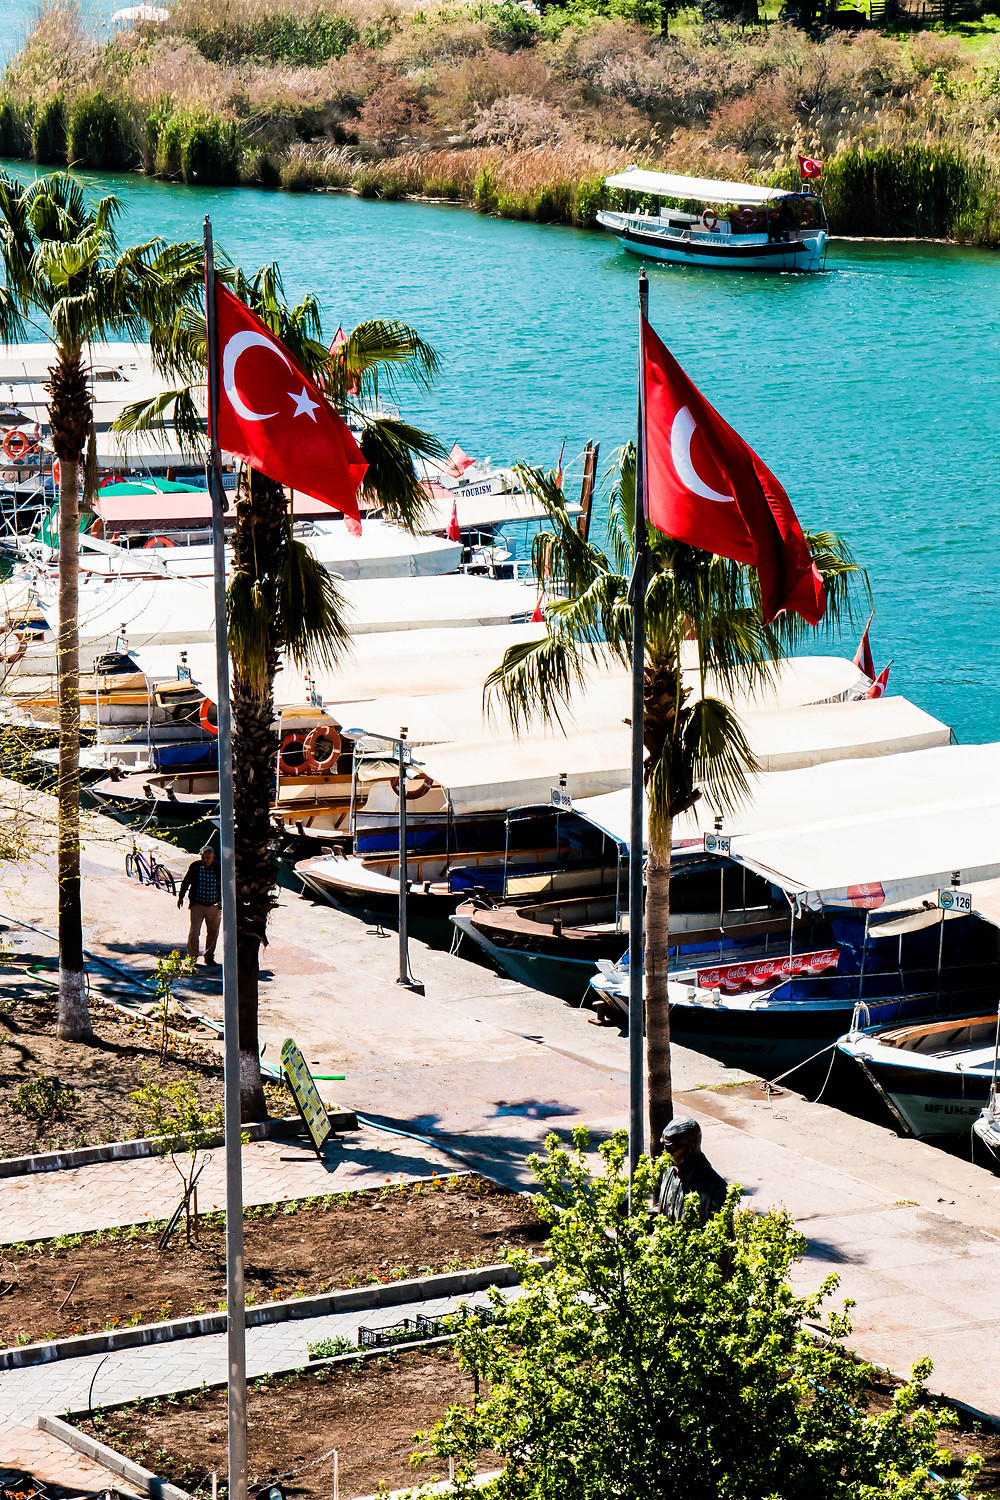 The Turkish Flags and the Ataturk Statue by the Dalyan River